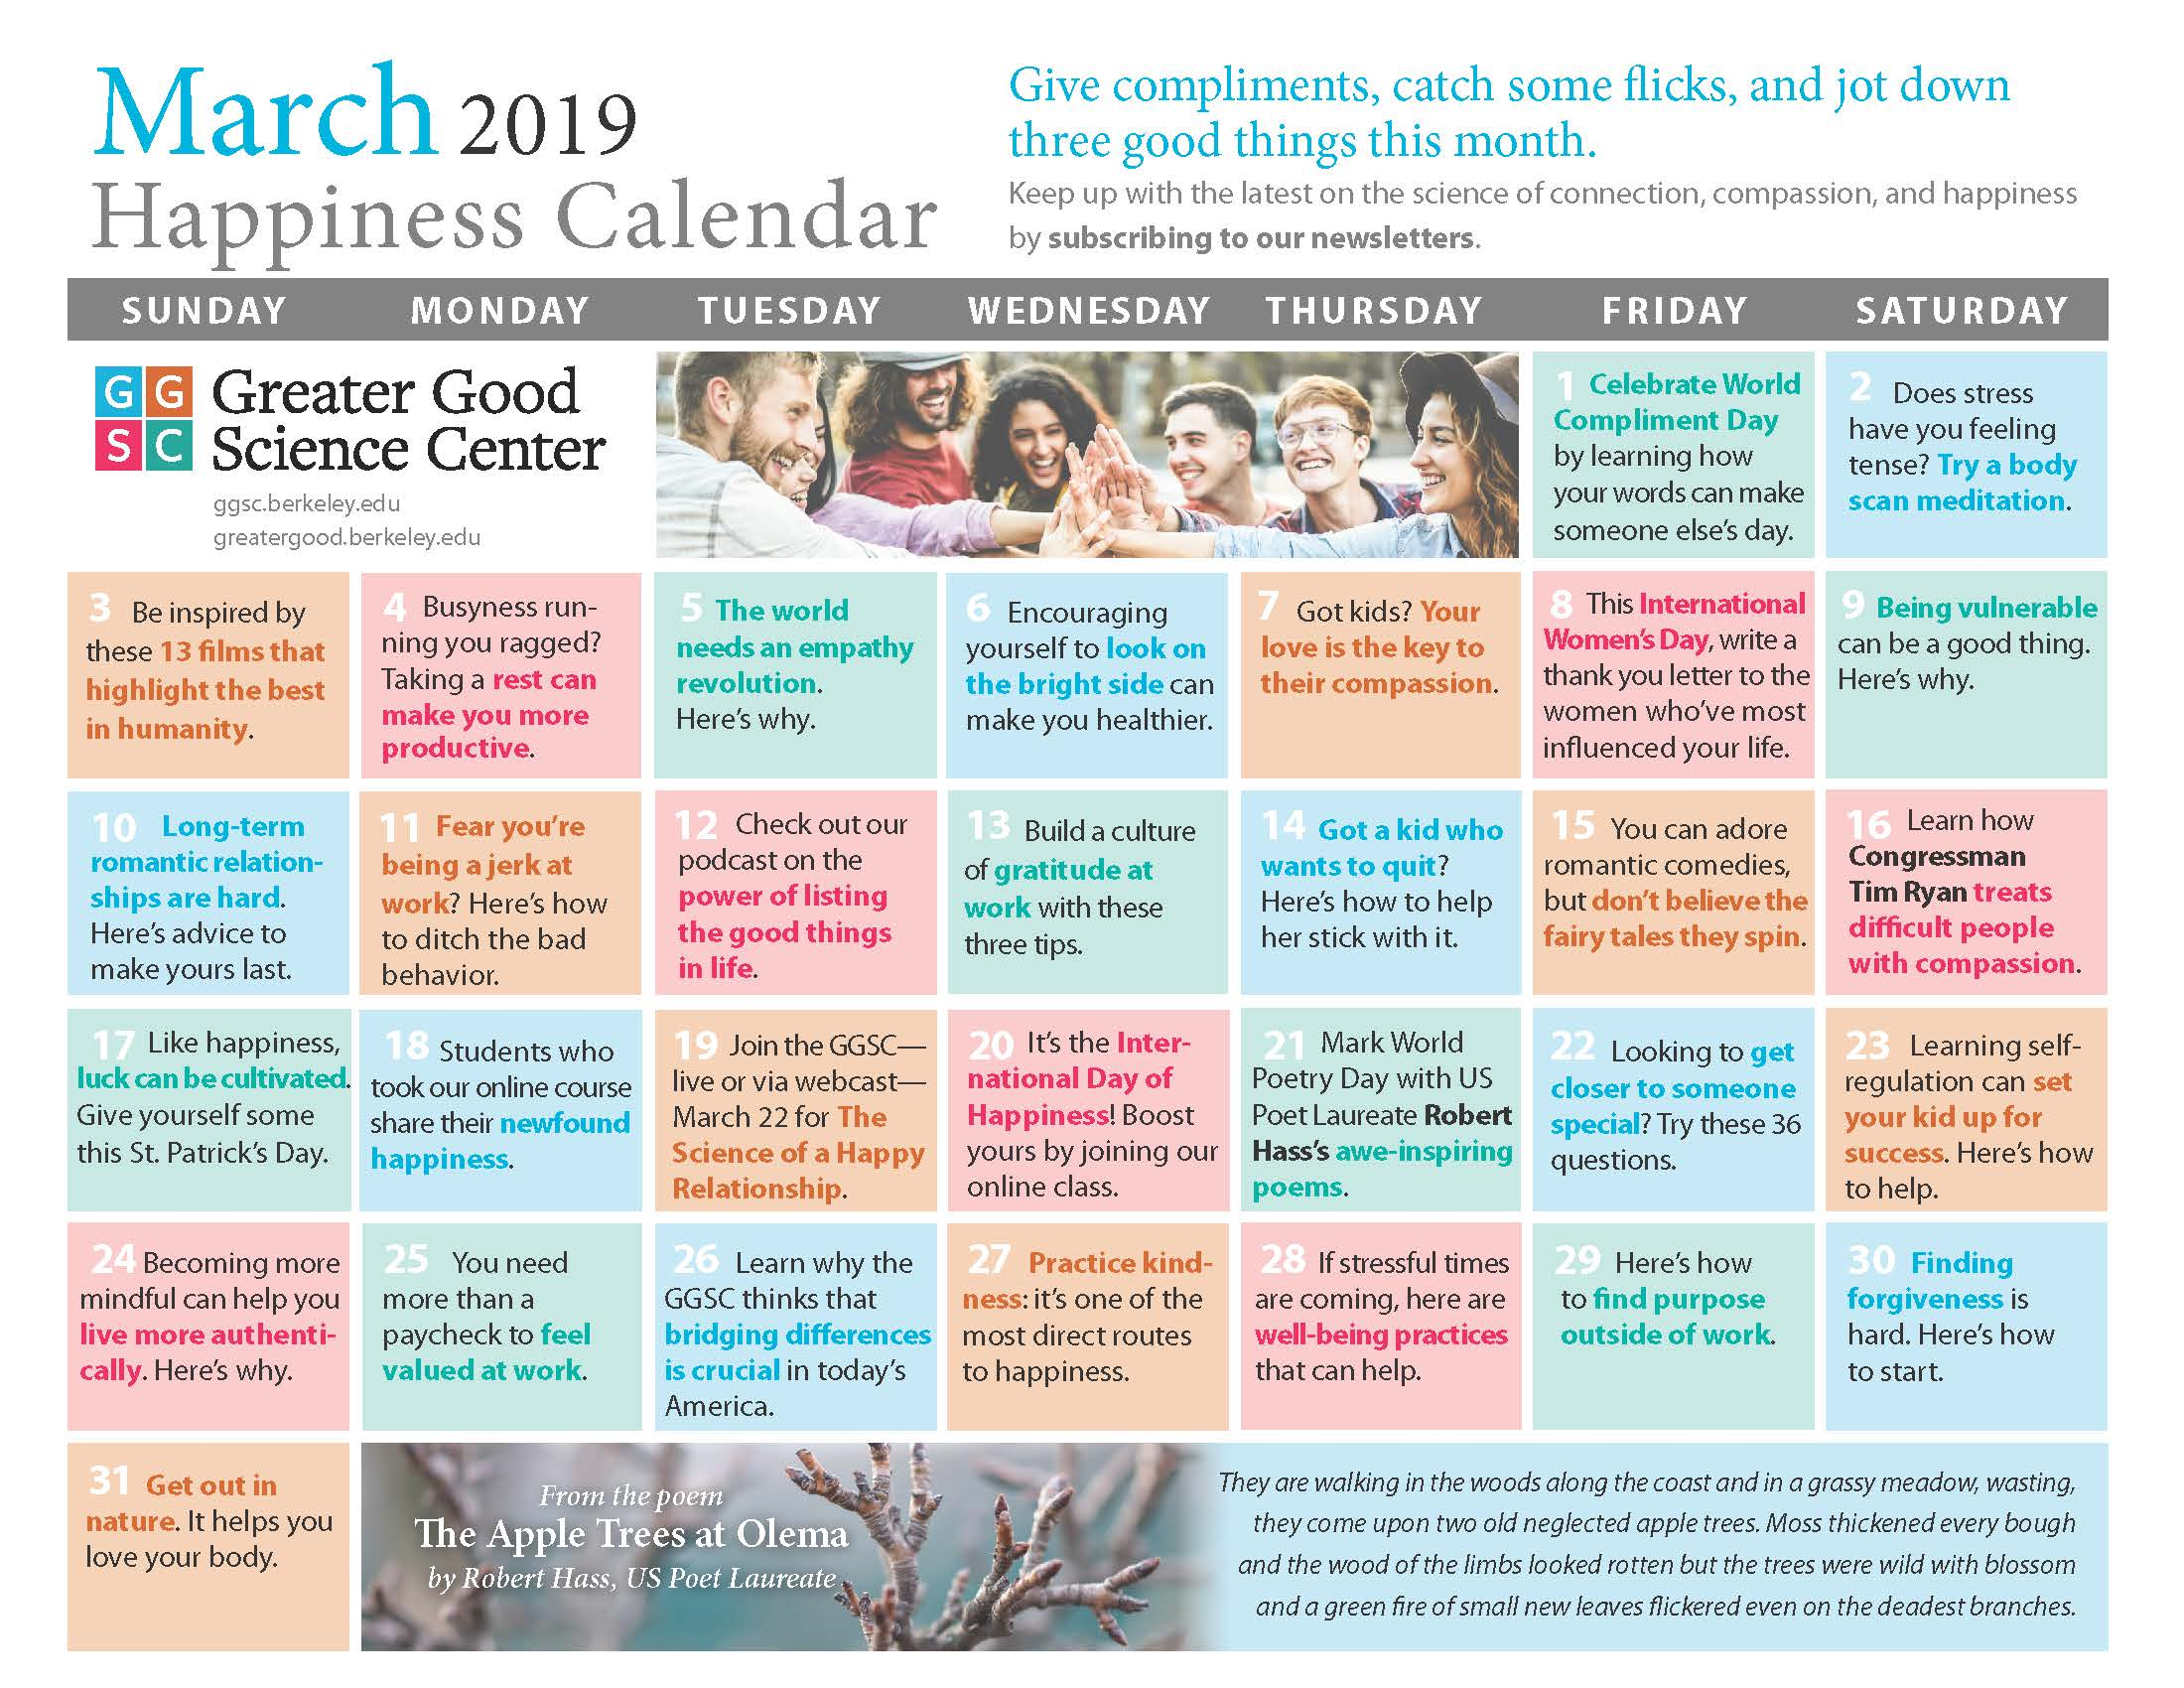 March 2019 Happiness Calendar